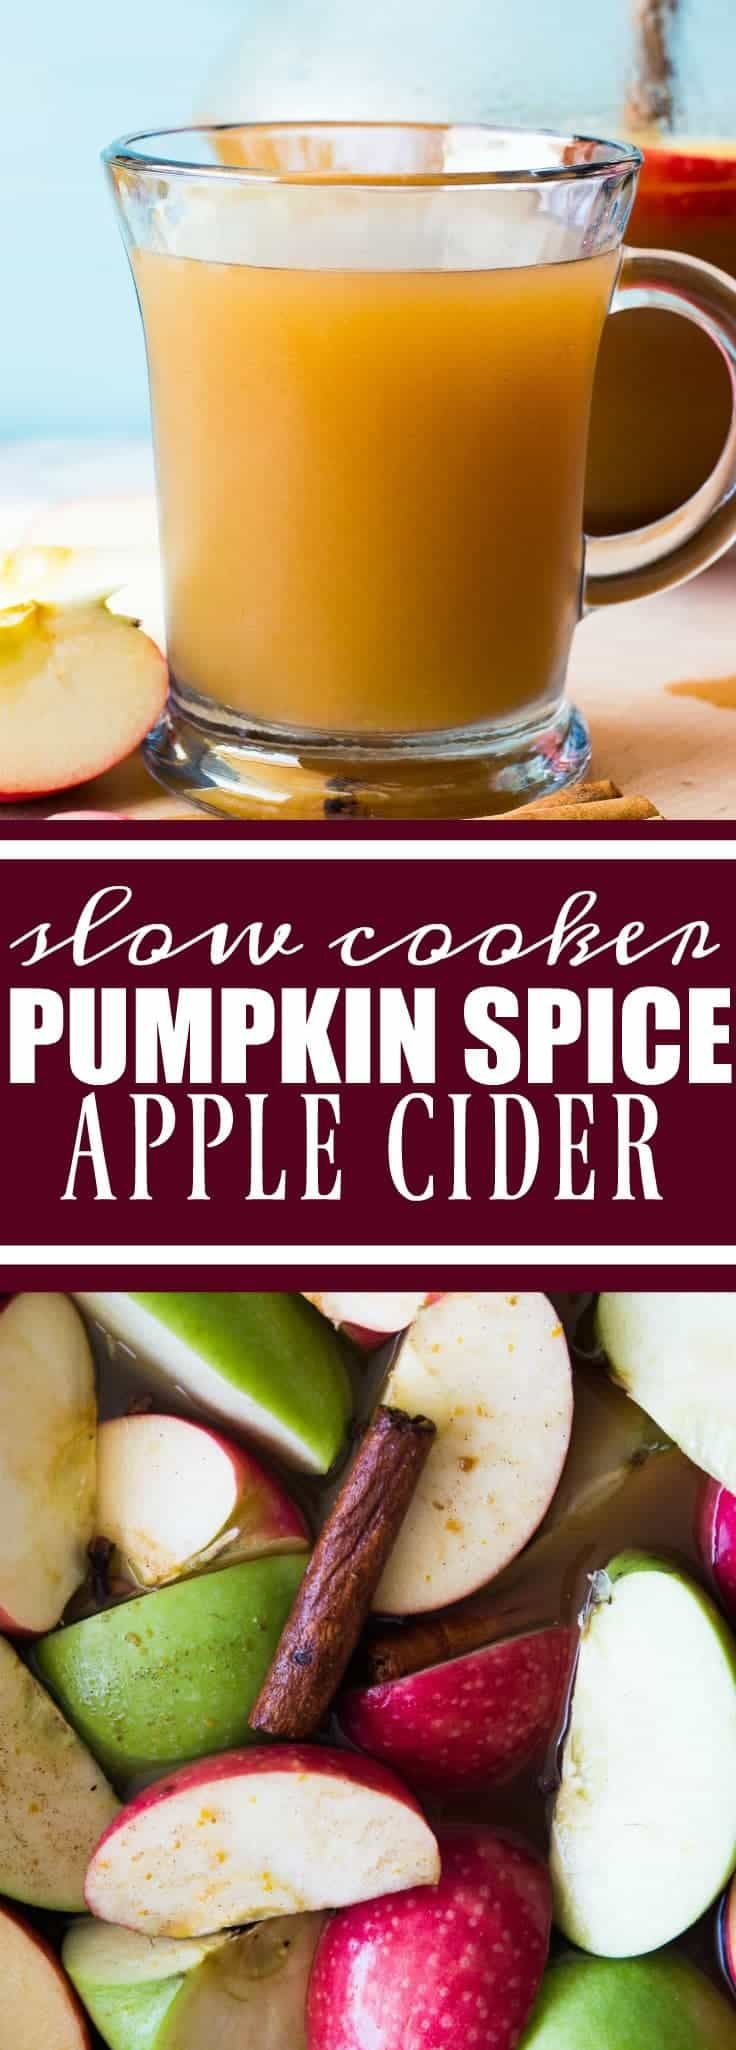 Slow Cooker Pumpkin Spice Apple Cider. Enjoy all the flavors of fall with this pumpkin spice infused apple cider made using REAL apples! Hey y'all! Pumpkin Spice Apple Cider is where it's at!! Yes. I love pumpkin spice. What's the hashtag that people are using to describe this love? Basic? Yes. It's as basic as...Read More